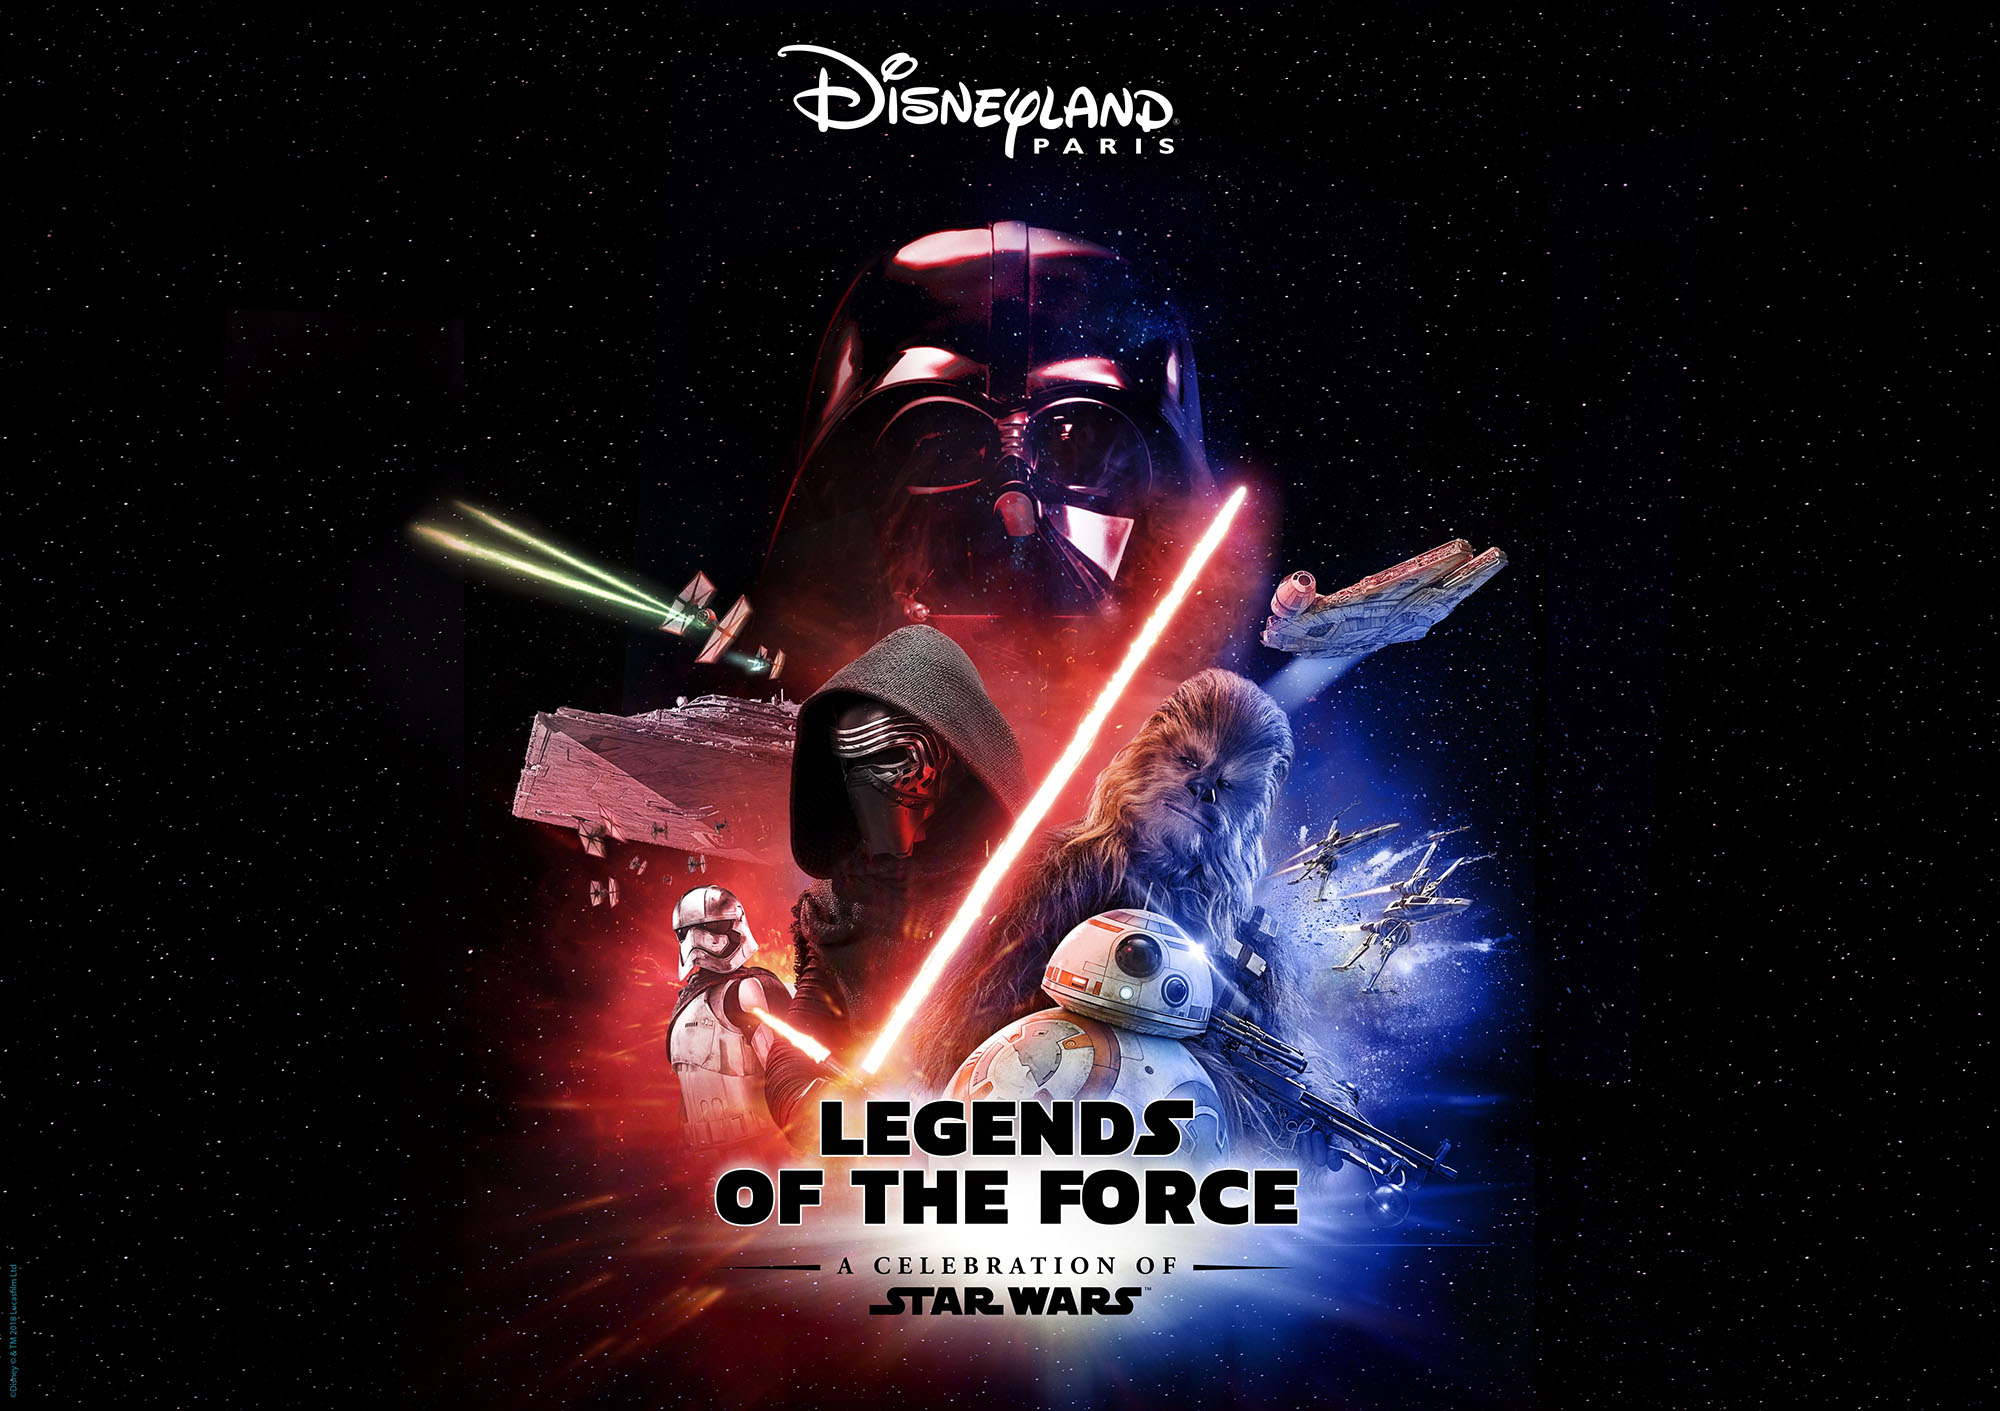 Star Wars Season Disneyland Paris 2019